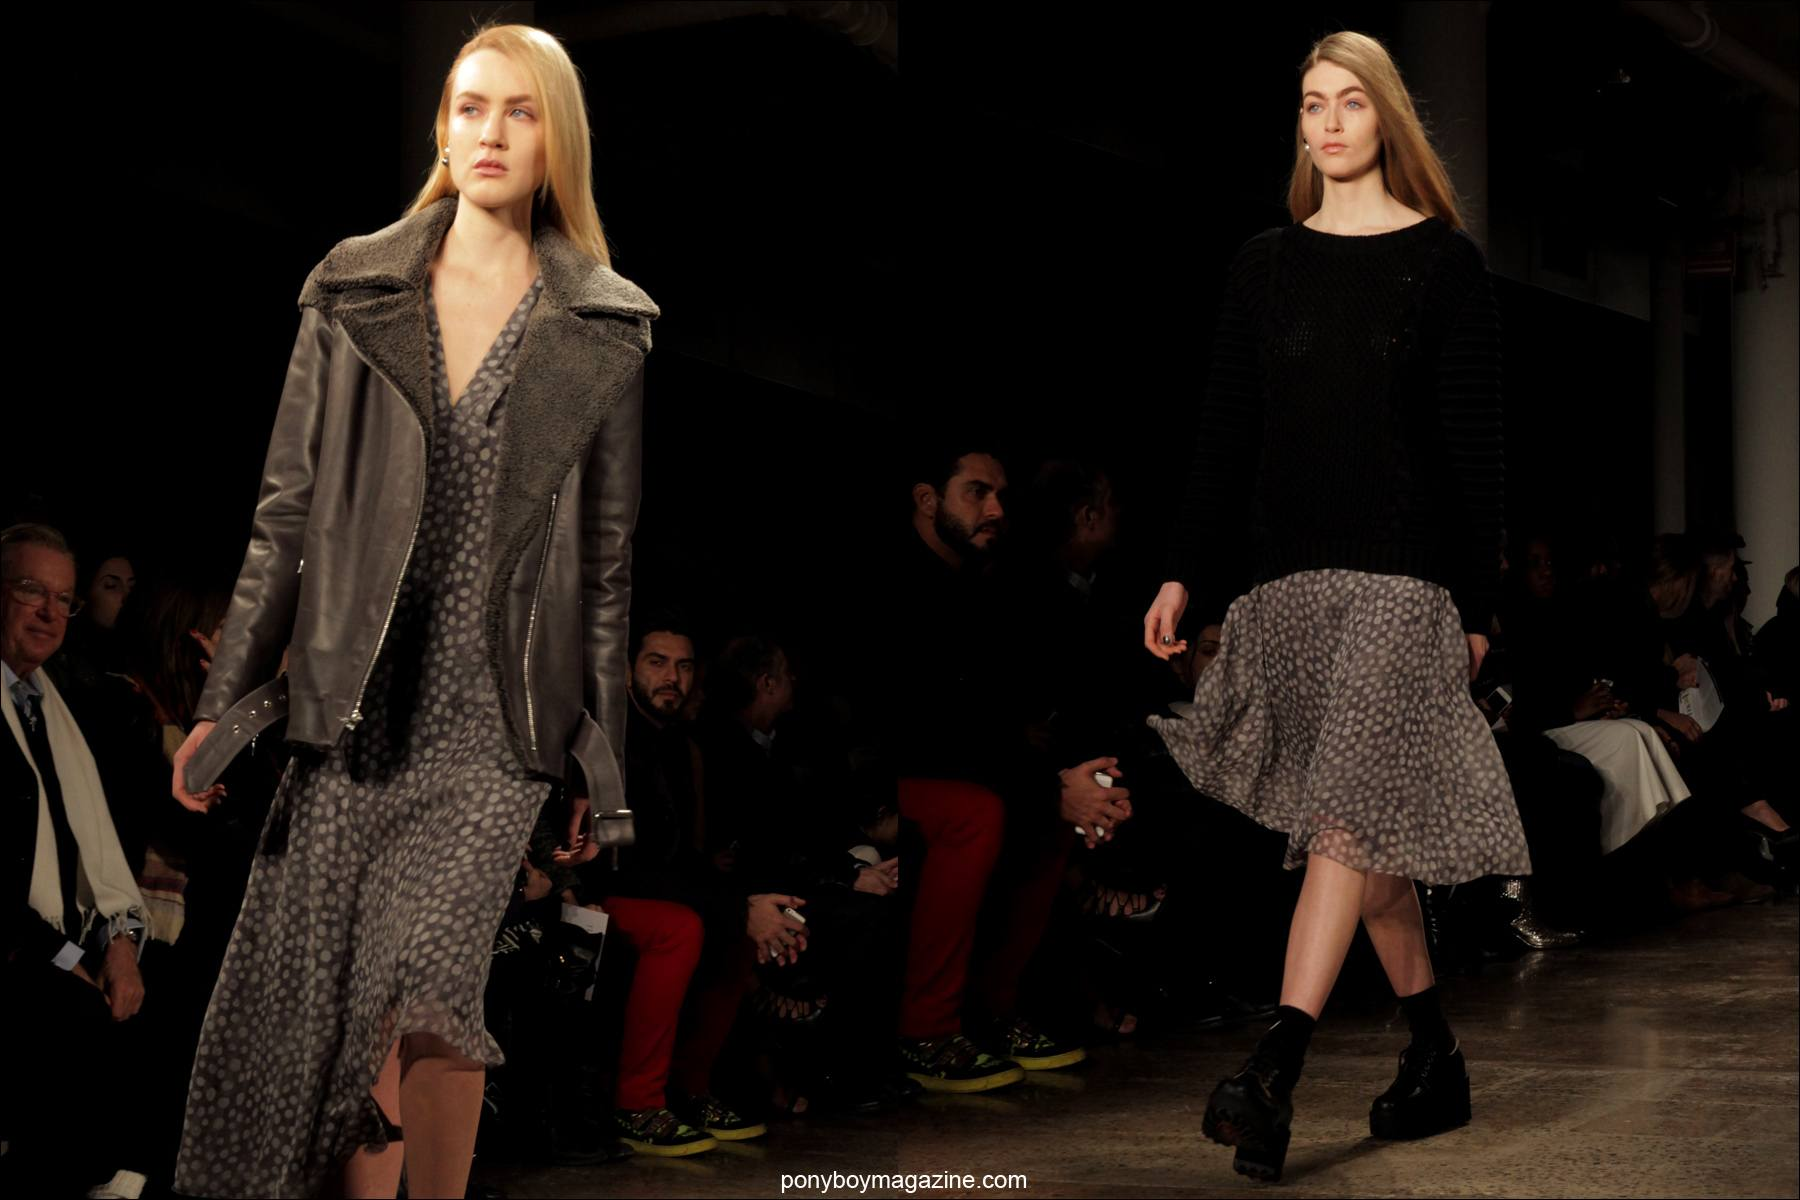 The latest fall/winter designs on the runway at the Timo Weiland A/W 2014 fashion show. Photographed for Ponyboy Magazine by Alexander Thompson during NYFW.